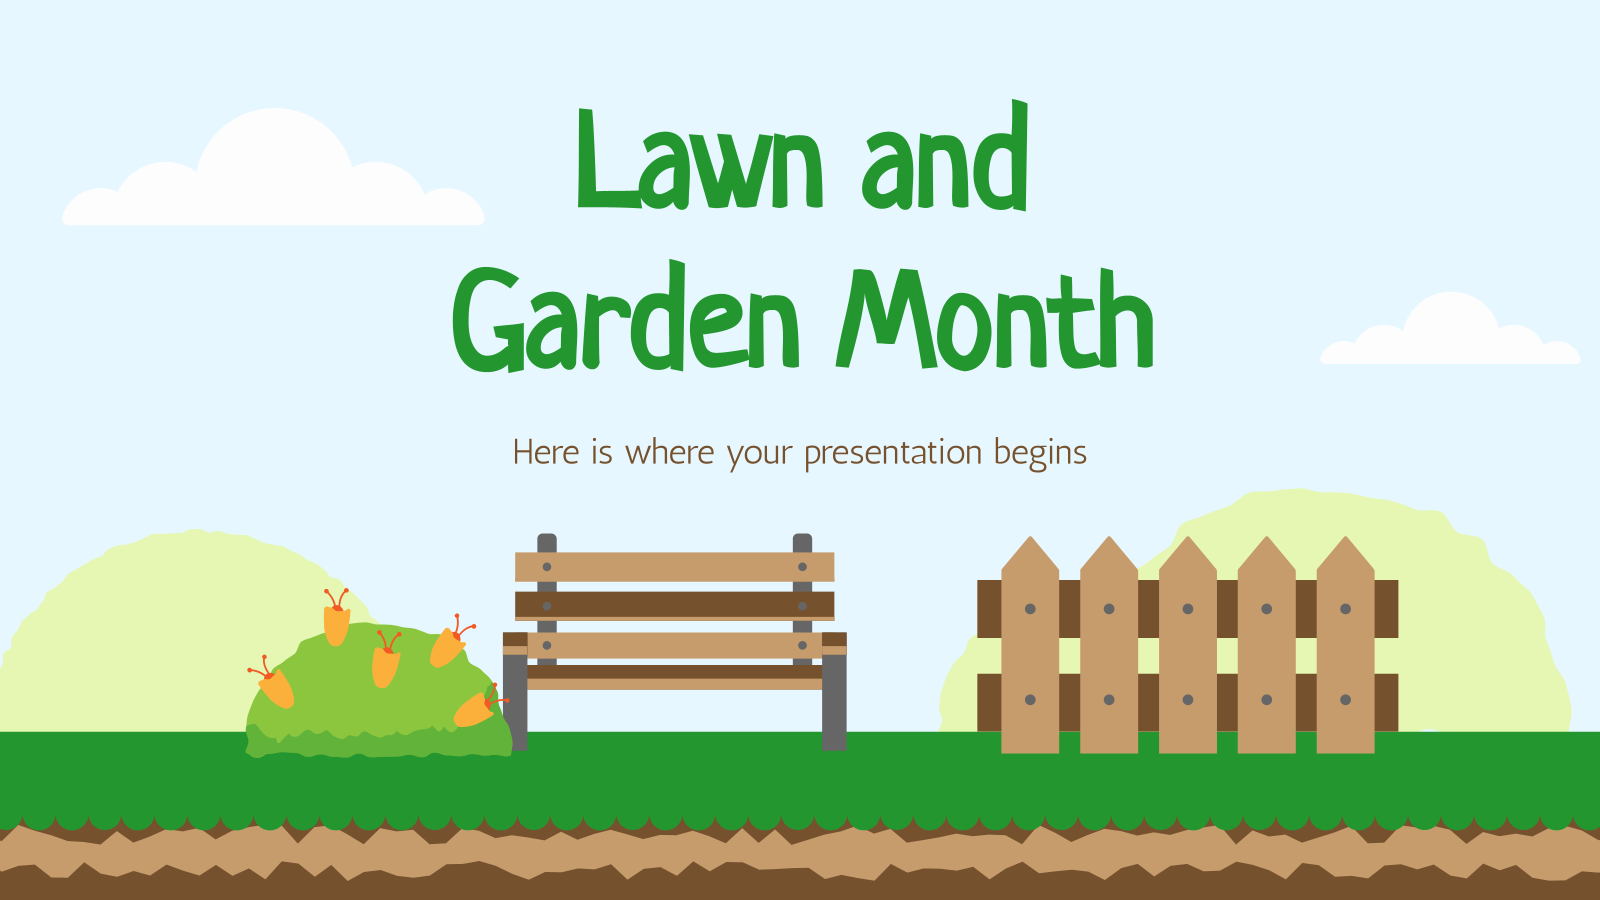 Lawn and Garden Month presentation template